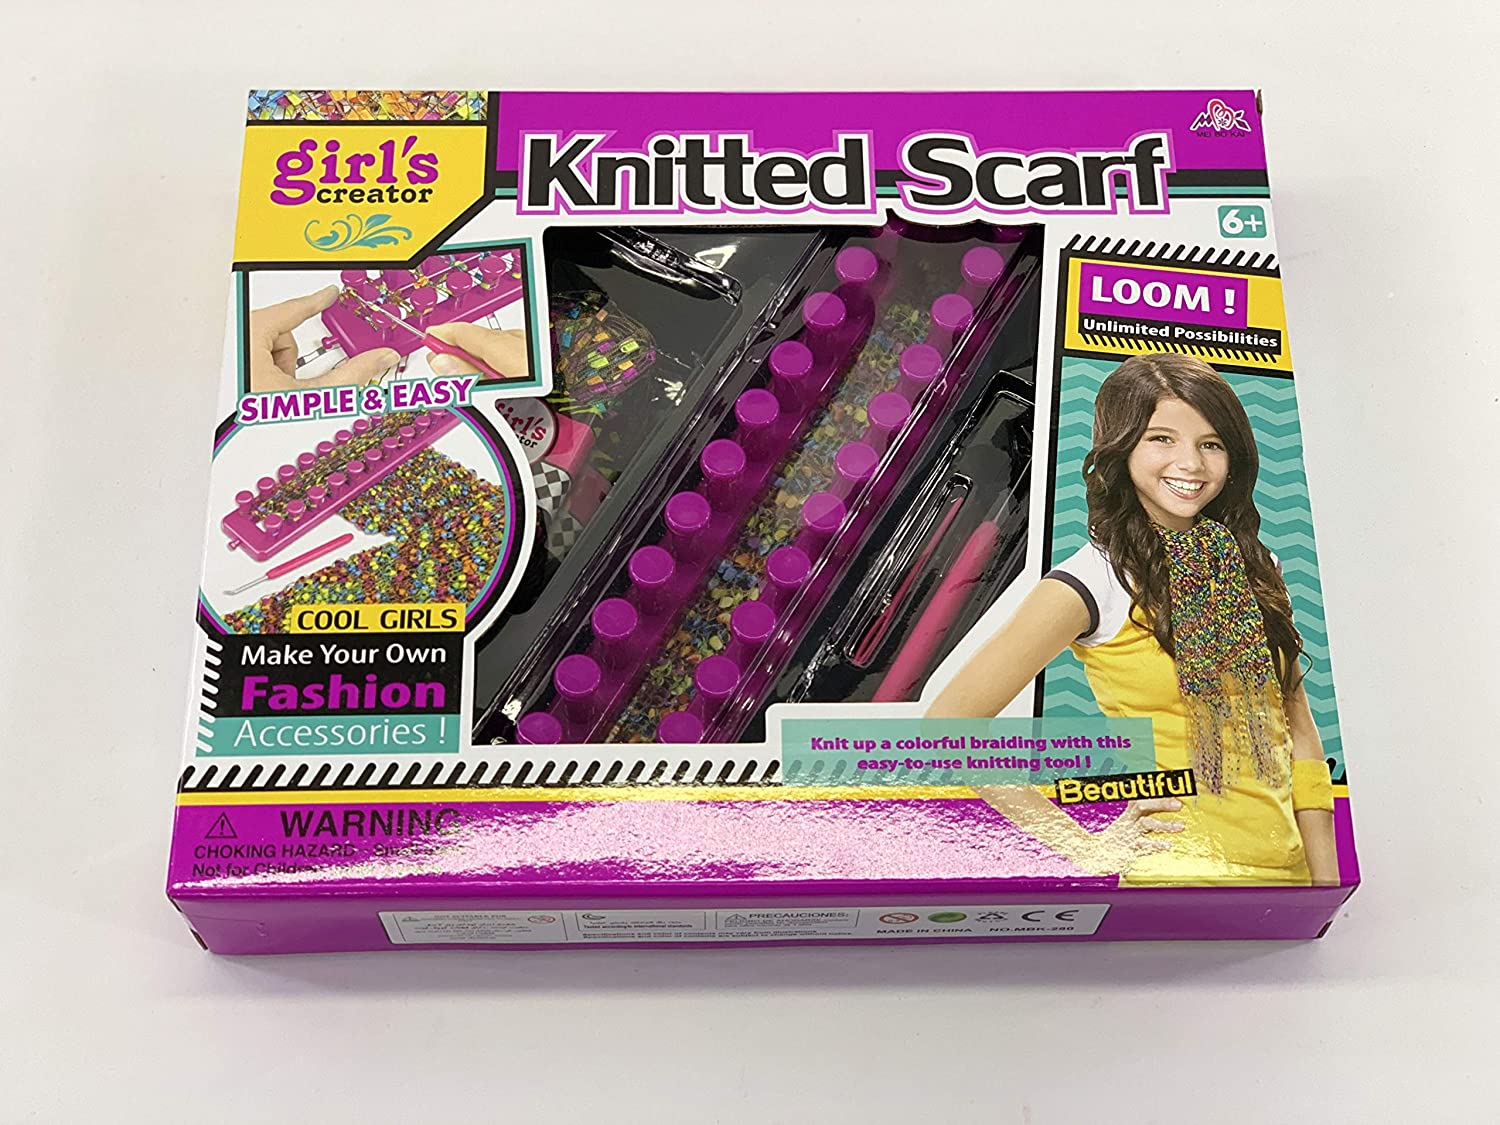 Girls creator Knitted Scarf